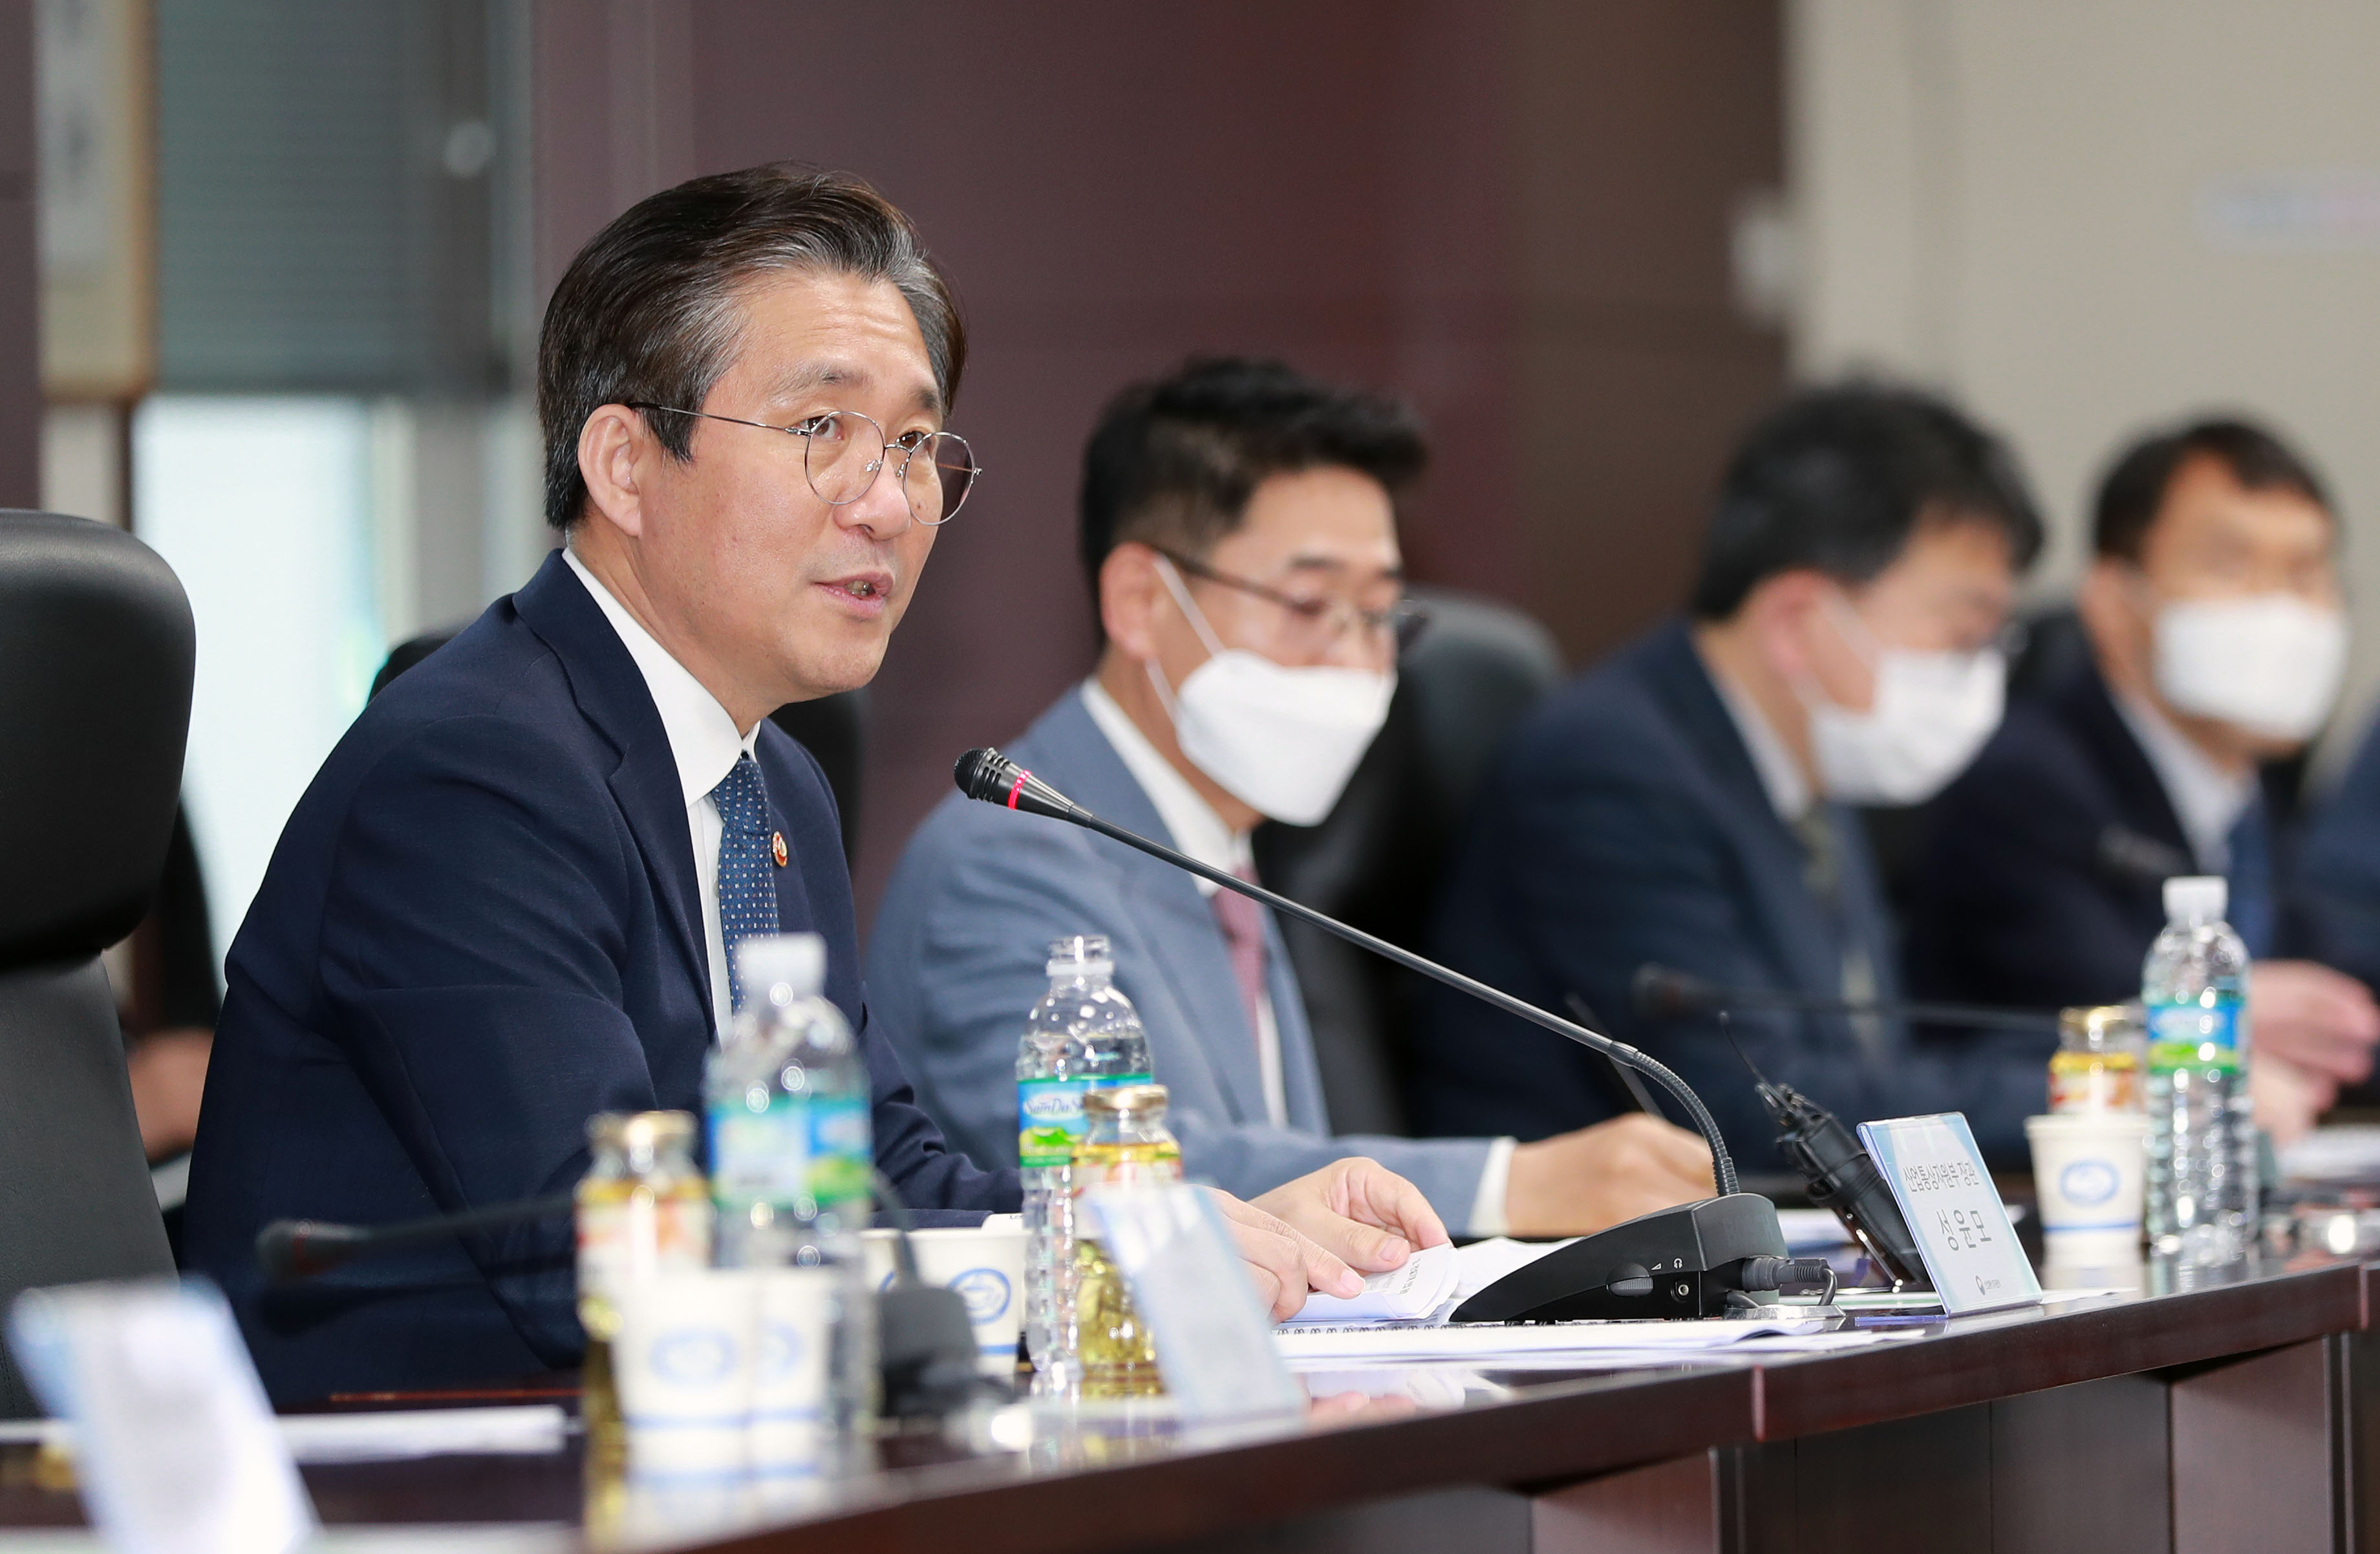 Industry Ministry holds 6th post-corona industrial strategy dialogue with construction equipment makers